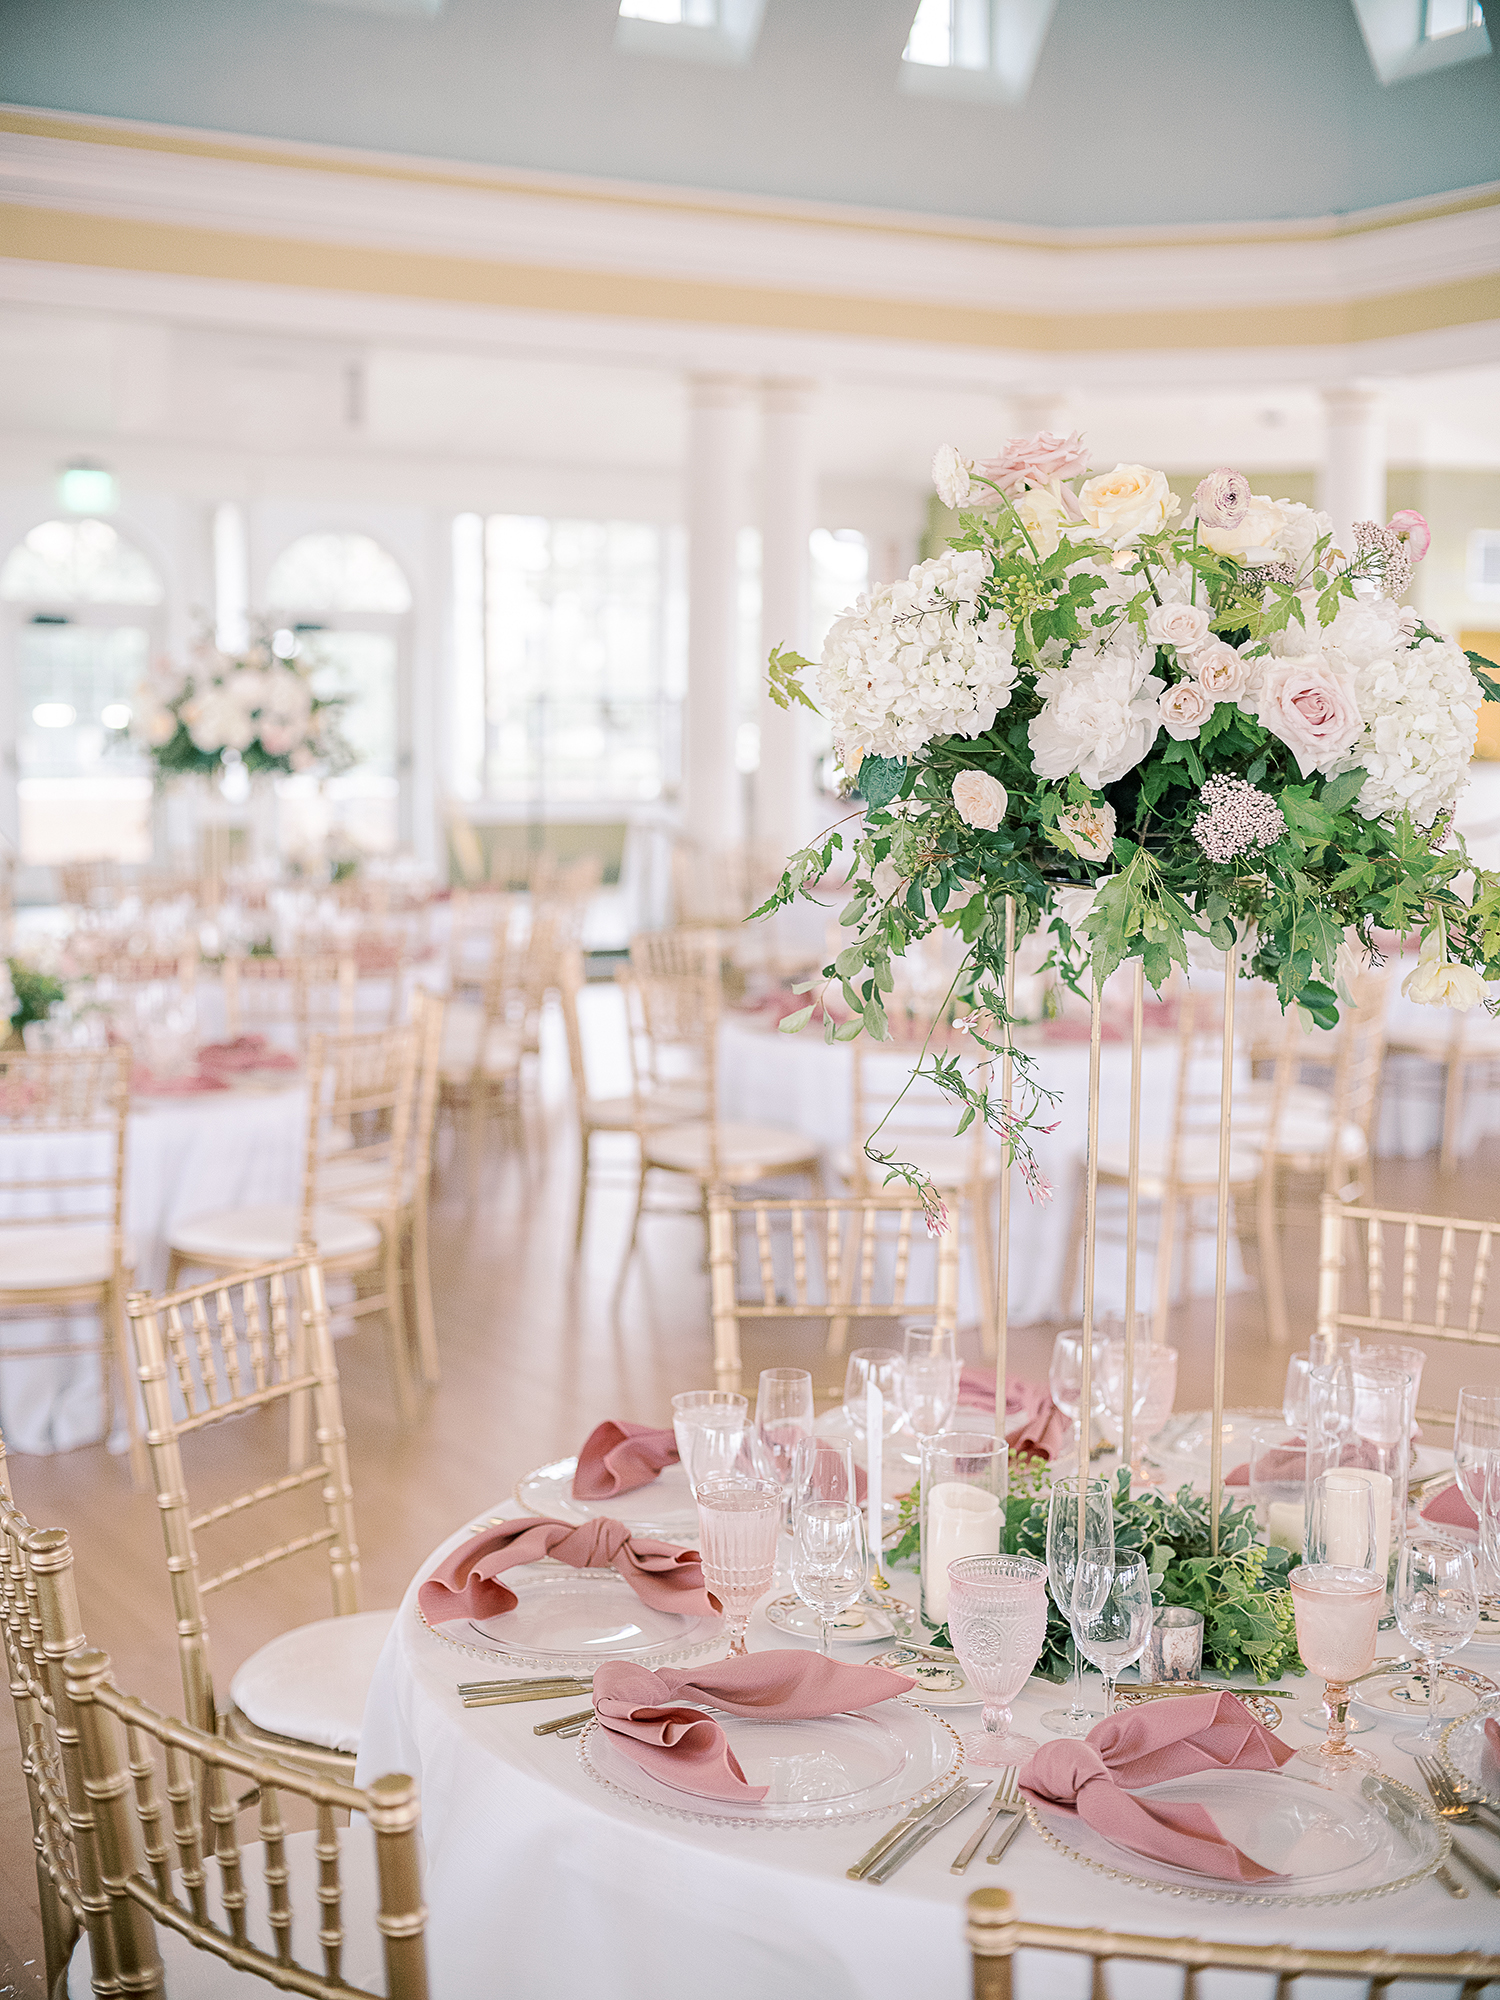 Christina Dusty Rose and Gold Wedding Ballroom Reception Clary Pfeiffer Photography detail